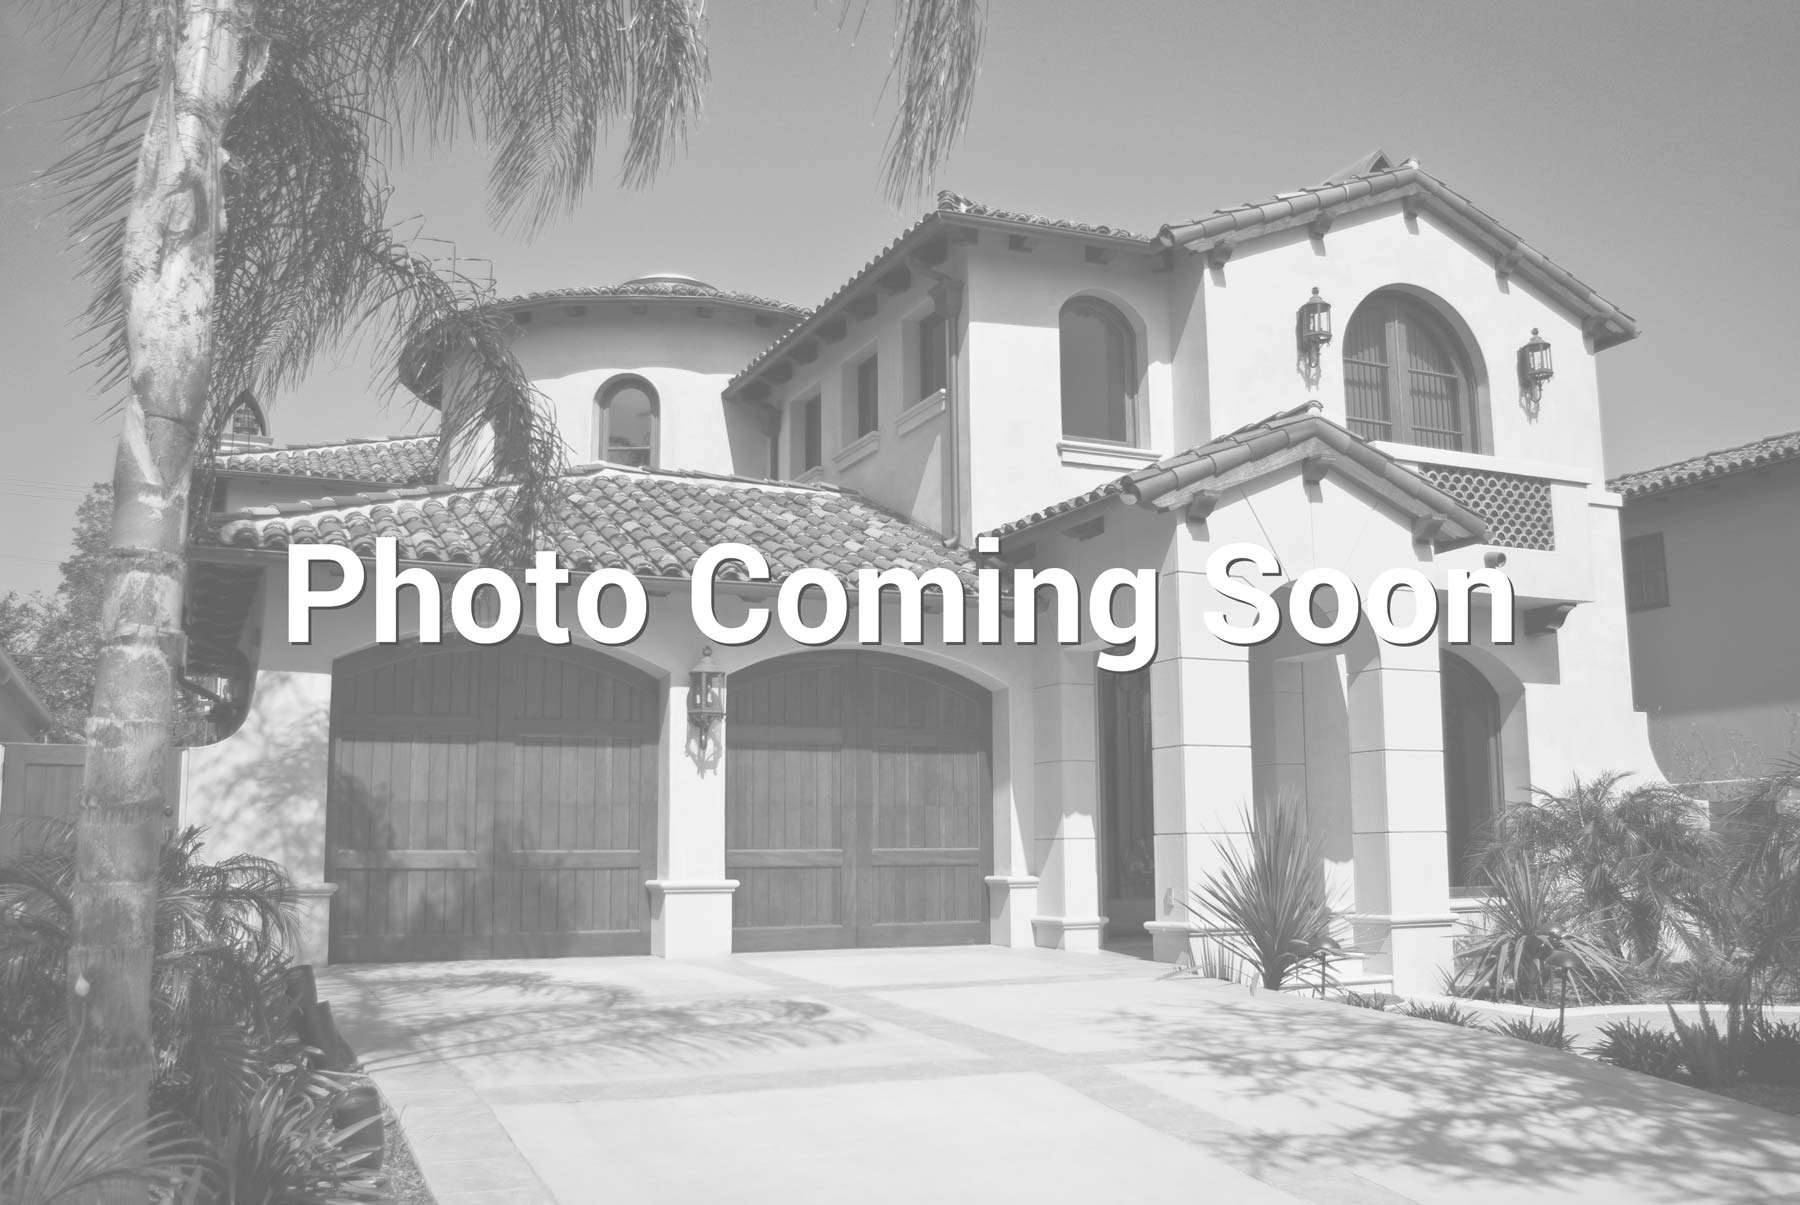 $1,295,000 - 6Br/7Ba - Home for Sale in Saddleback Meadows Unit 6, Glendale